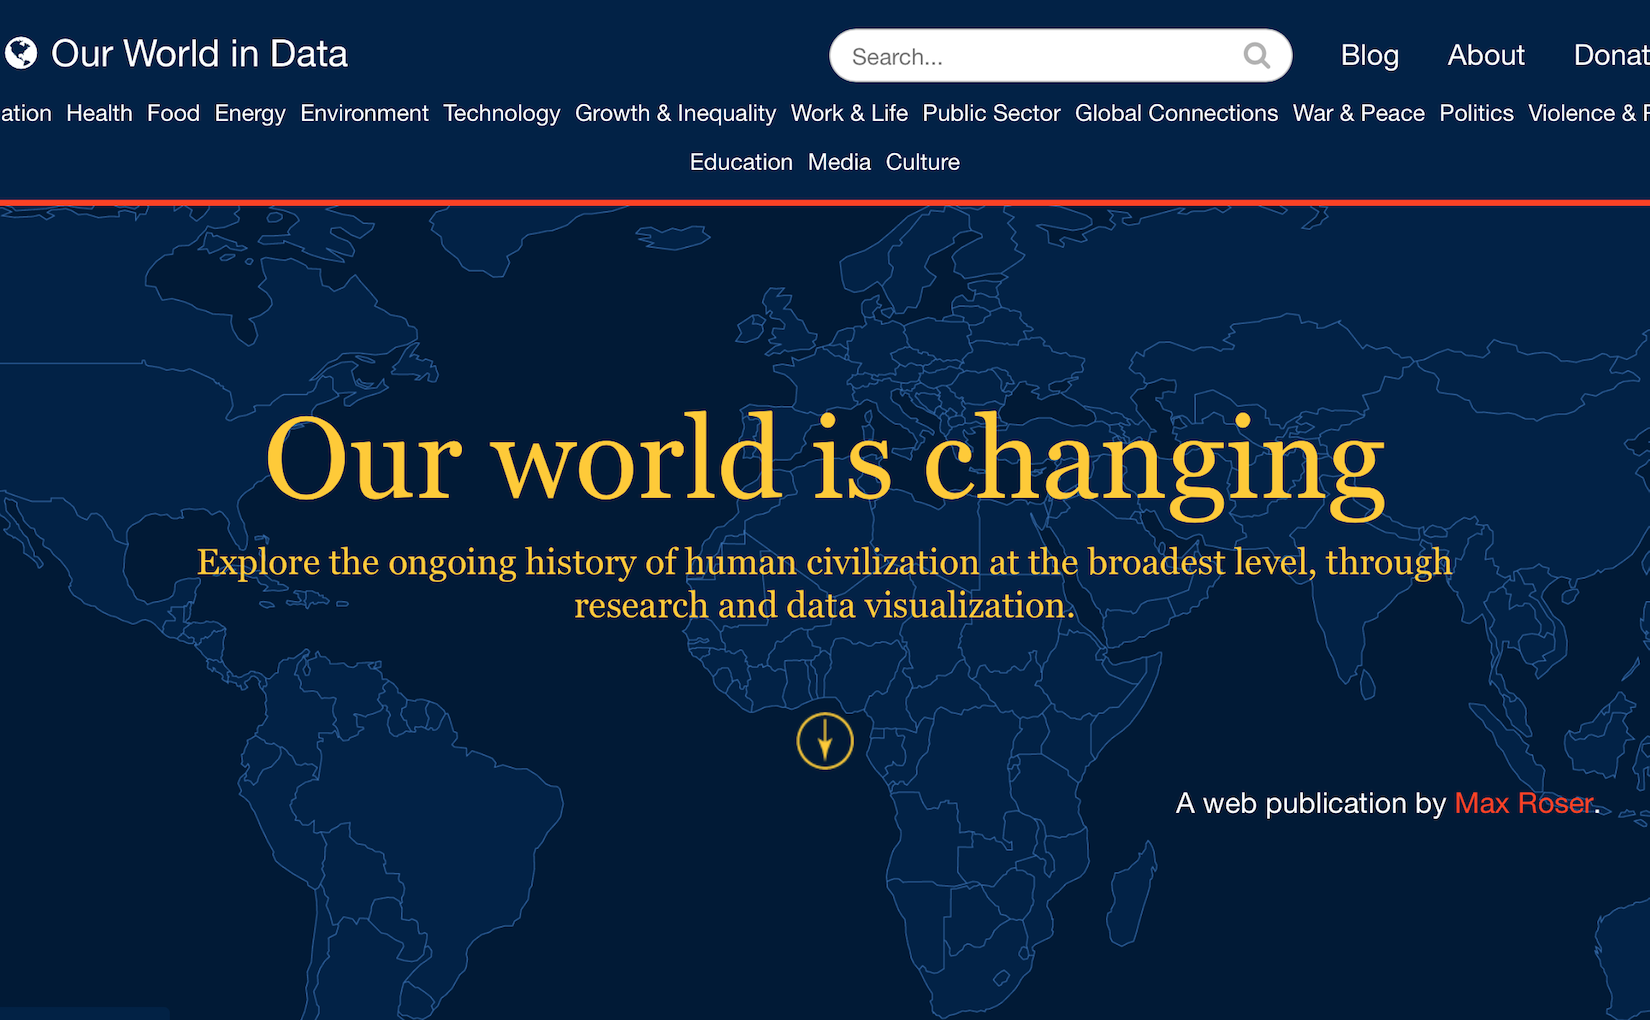 Link: Our World in Data